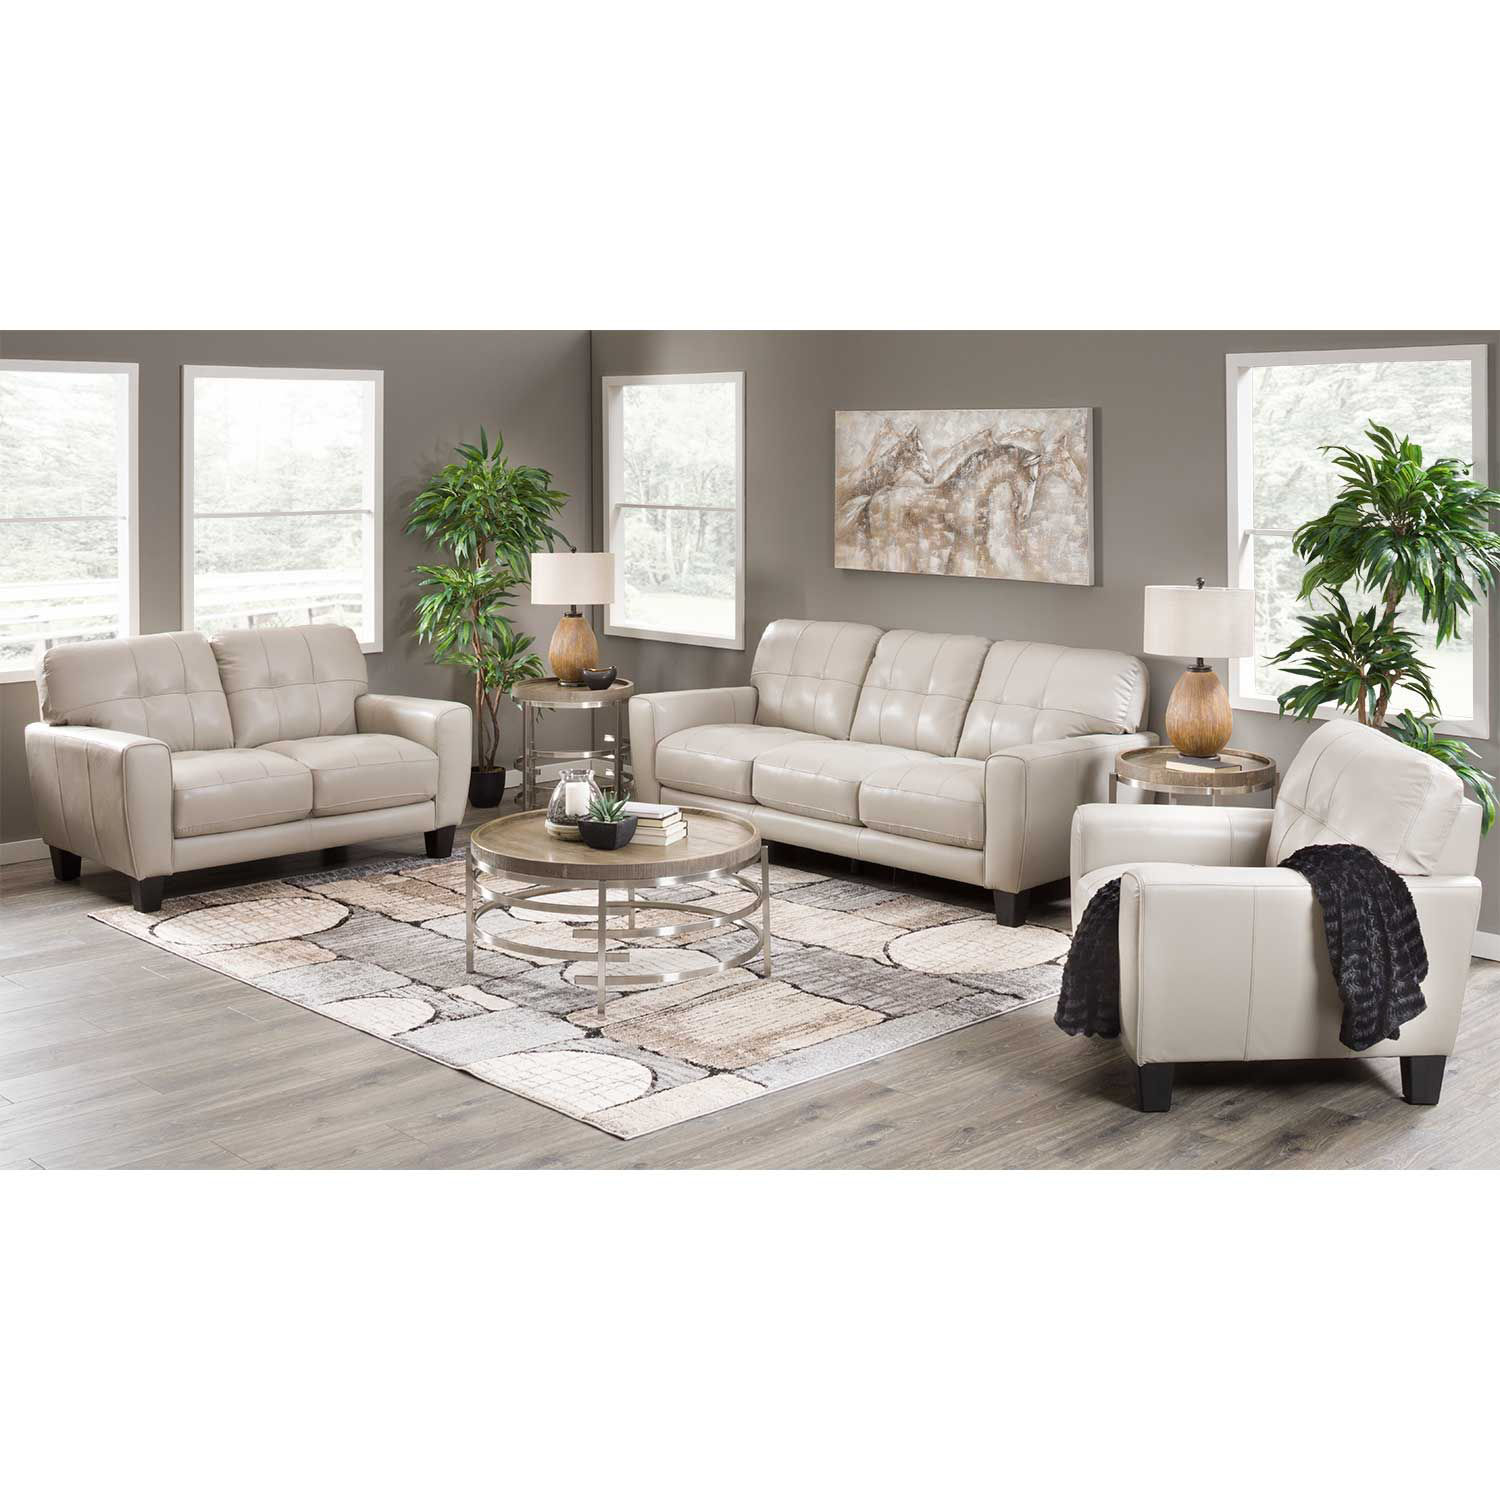 Picture of Aria Taupe Leather Sofa